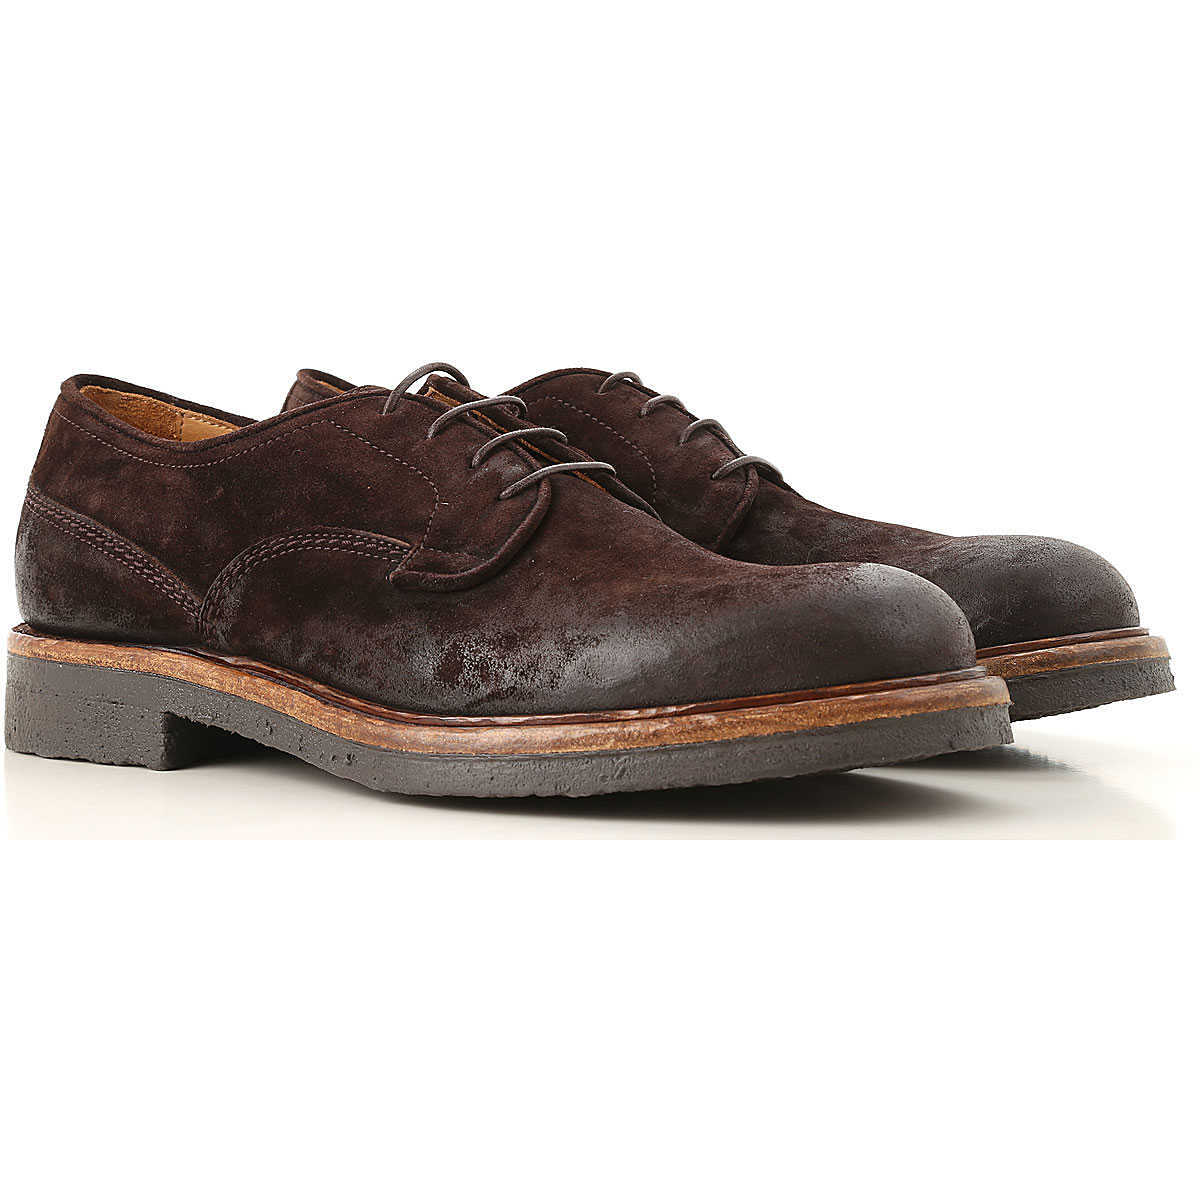 Corvari Lace Up Shoes for Men Oxfords Derbies and Brogues On Sale in Outlet - GOOFASH